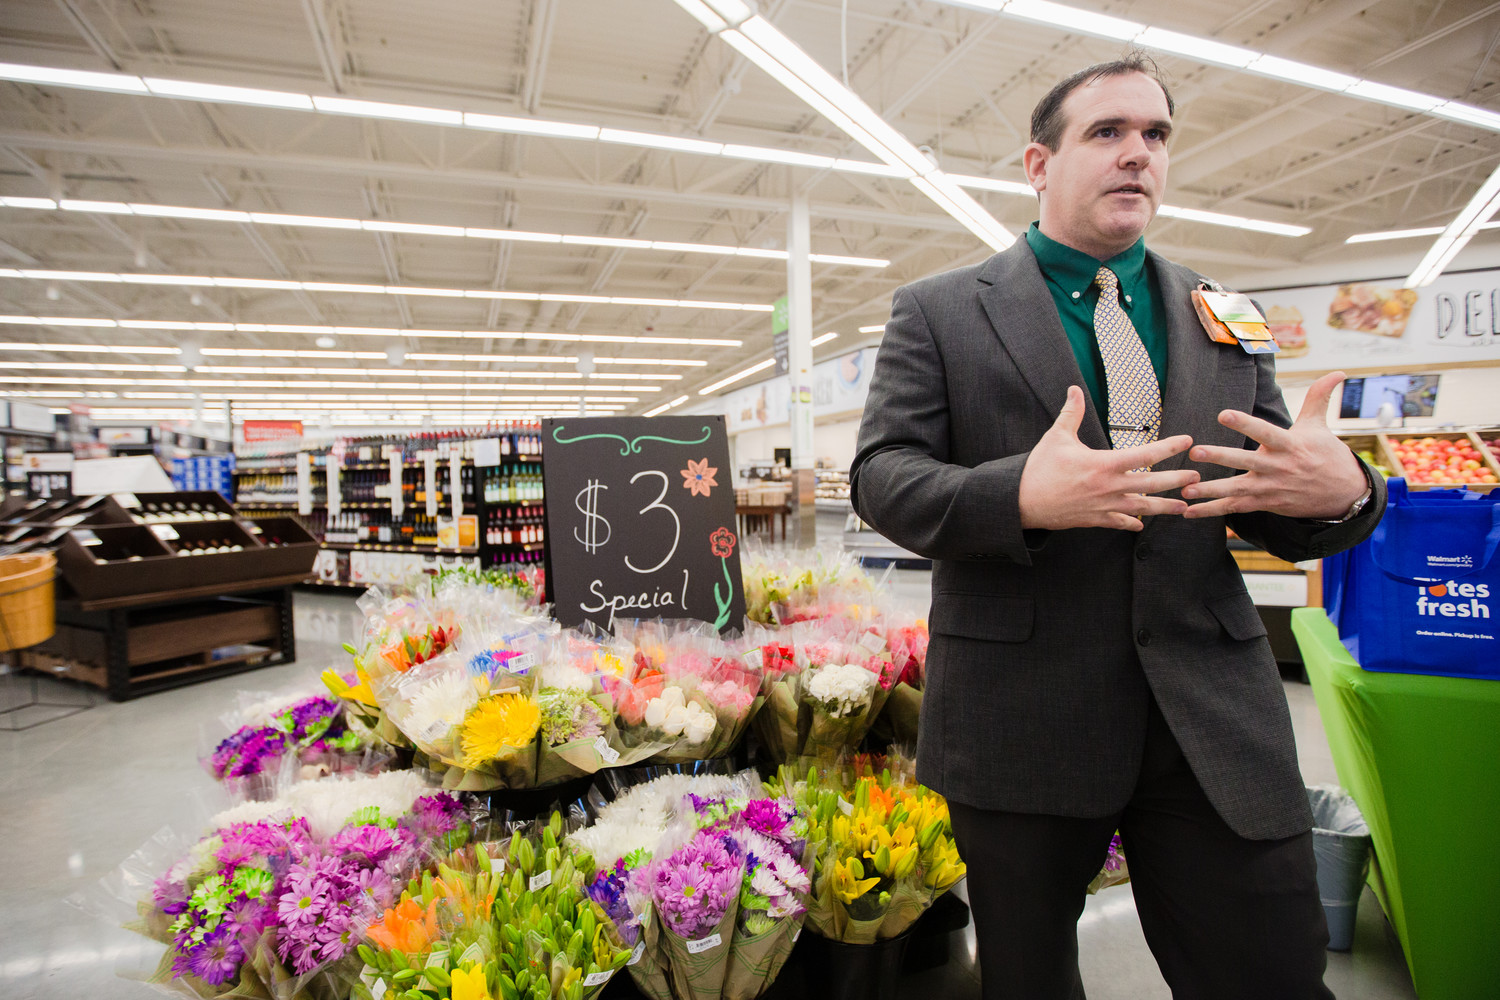 Adam Bunker, manager at the new Walmart Neighborhood Market, gives a tour of the store on Tuesday.